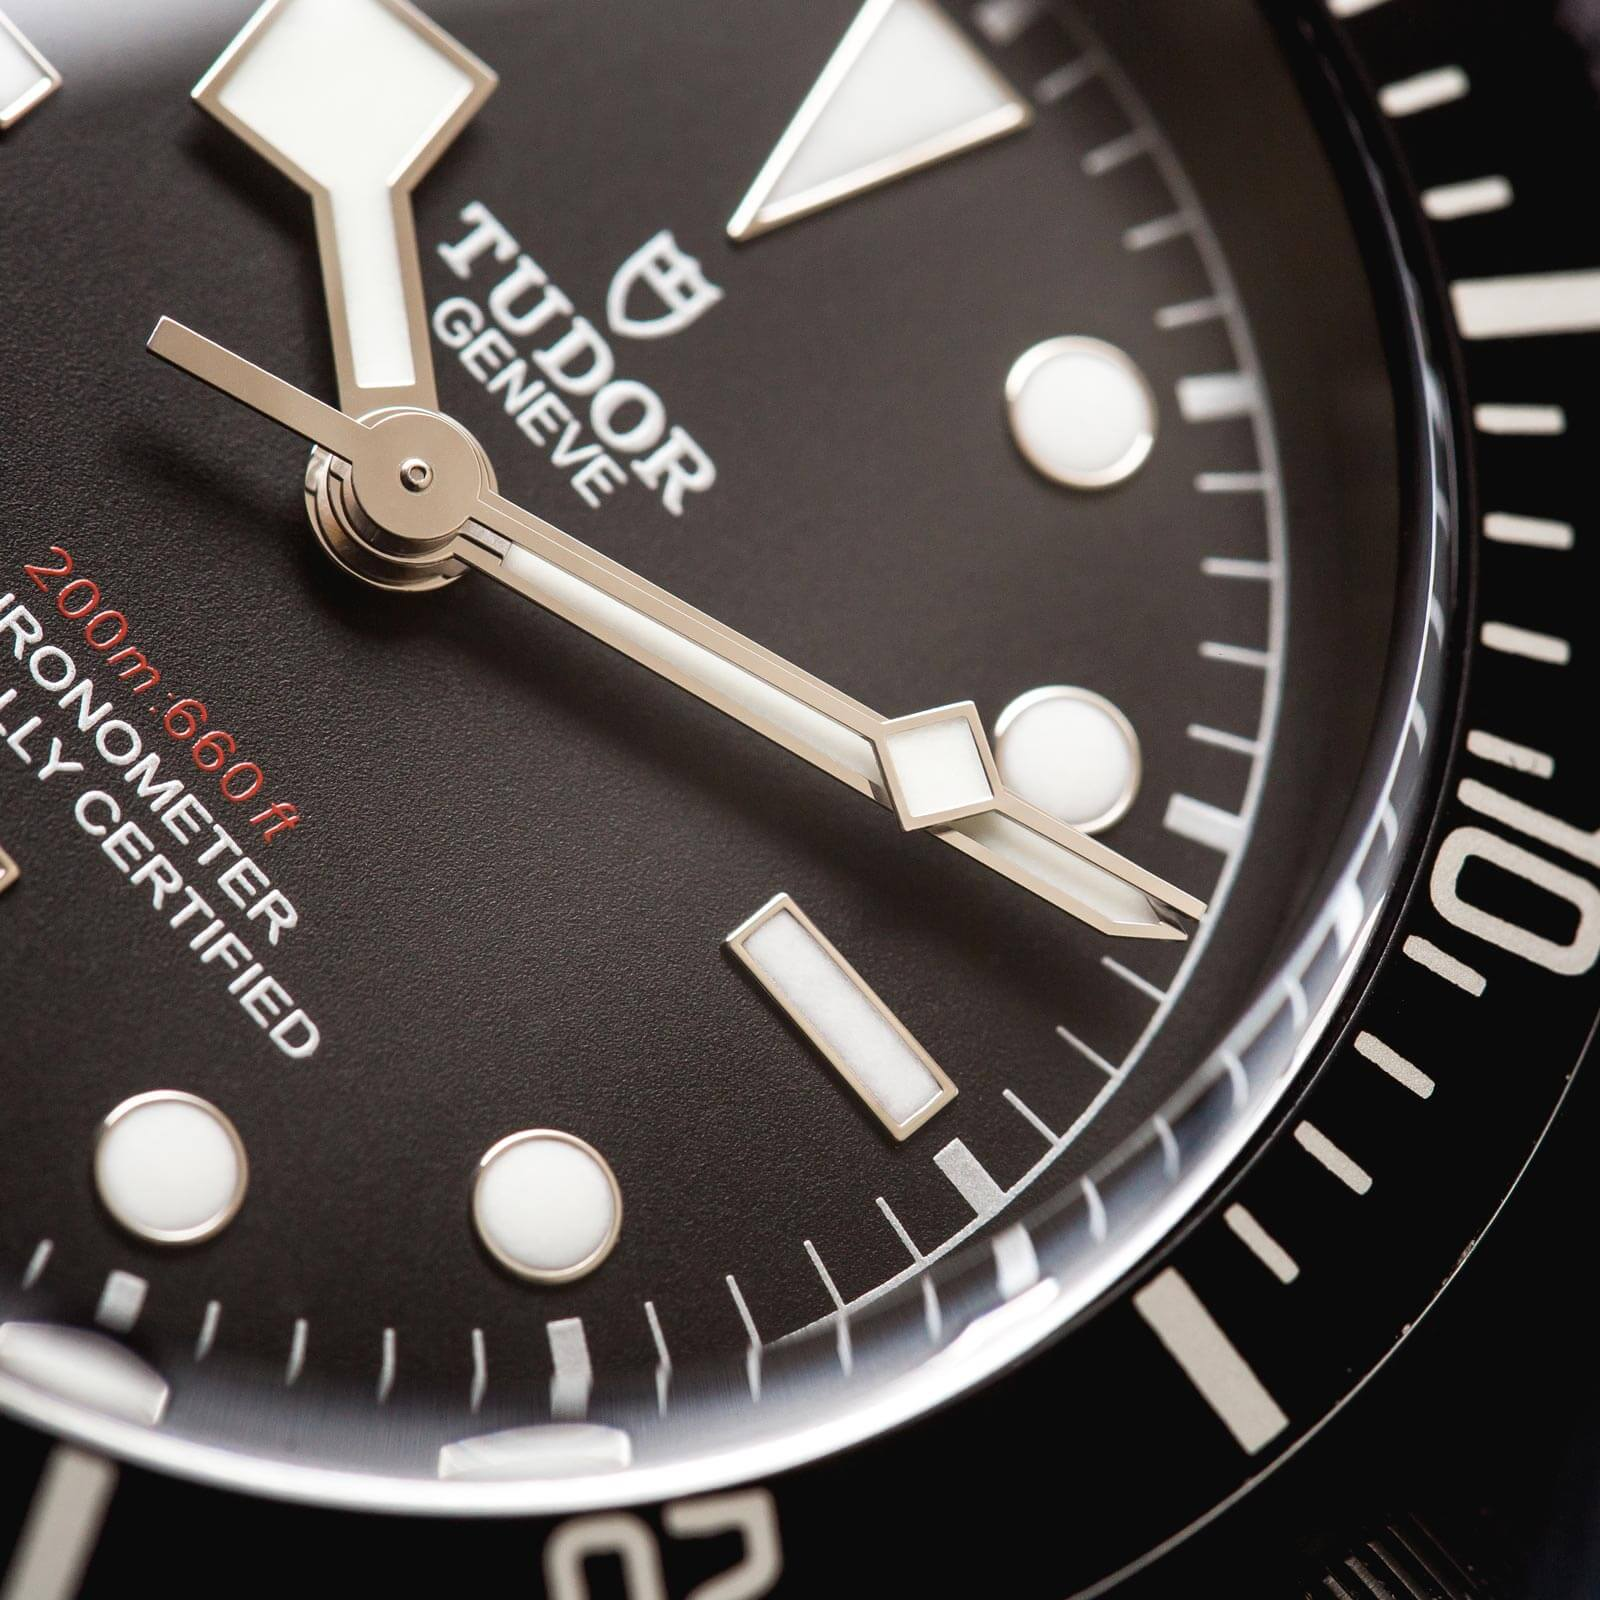 Tudor Black Bay Dark - Formula uspeha